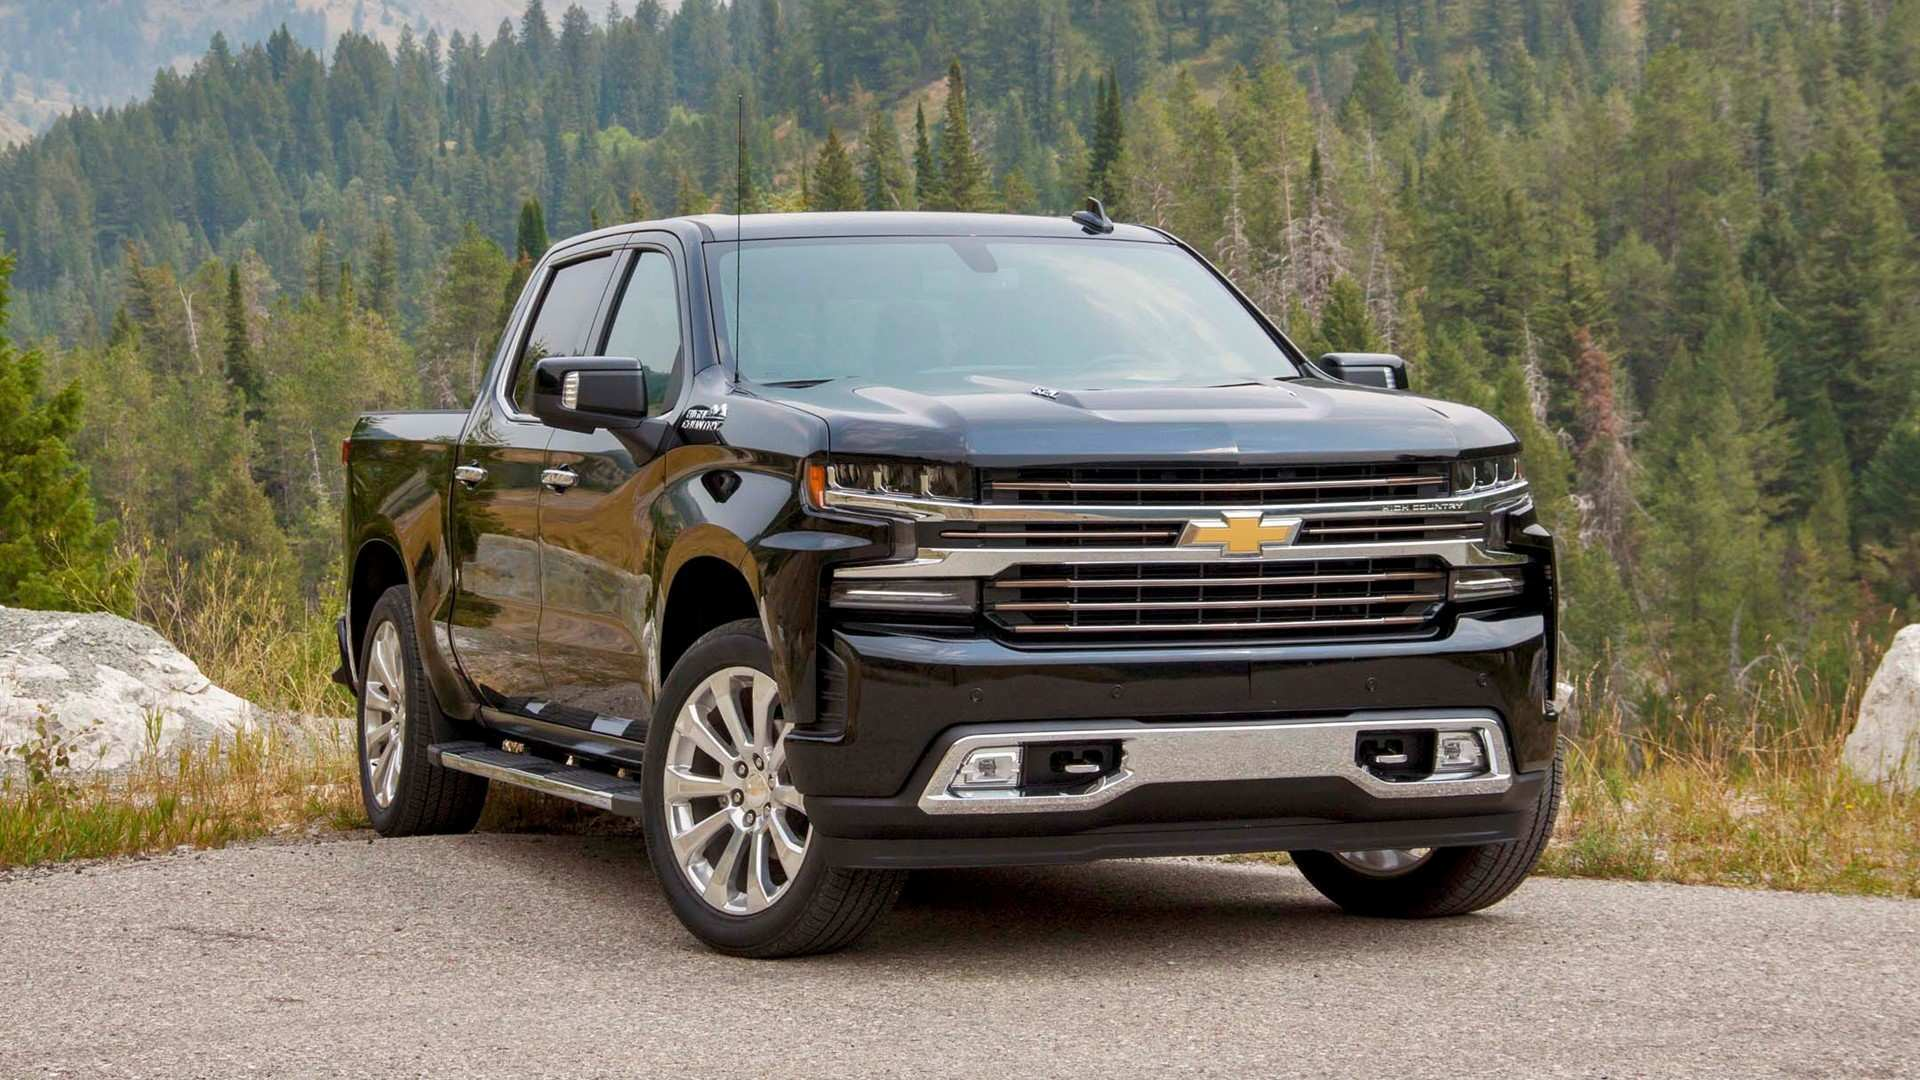 76 All New 2019 Chevrolet Pickup New Review with 2019 Chevrolet Pickup